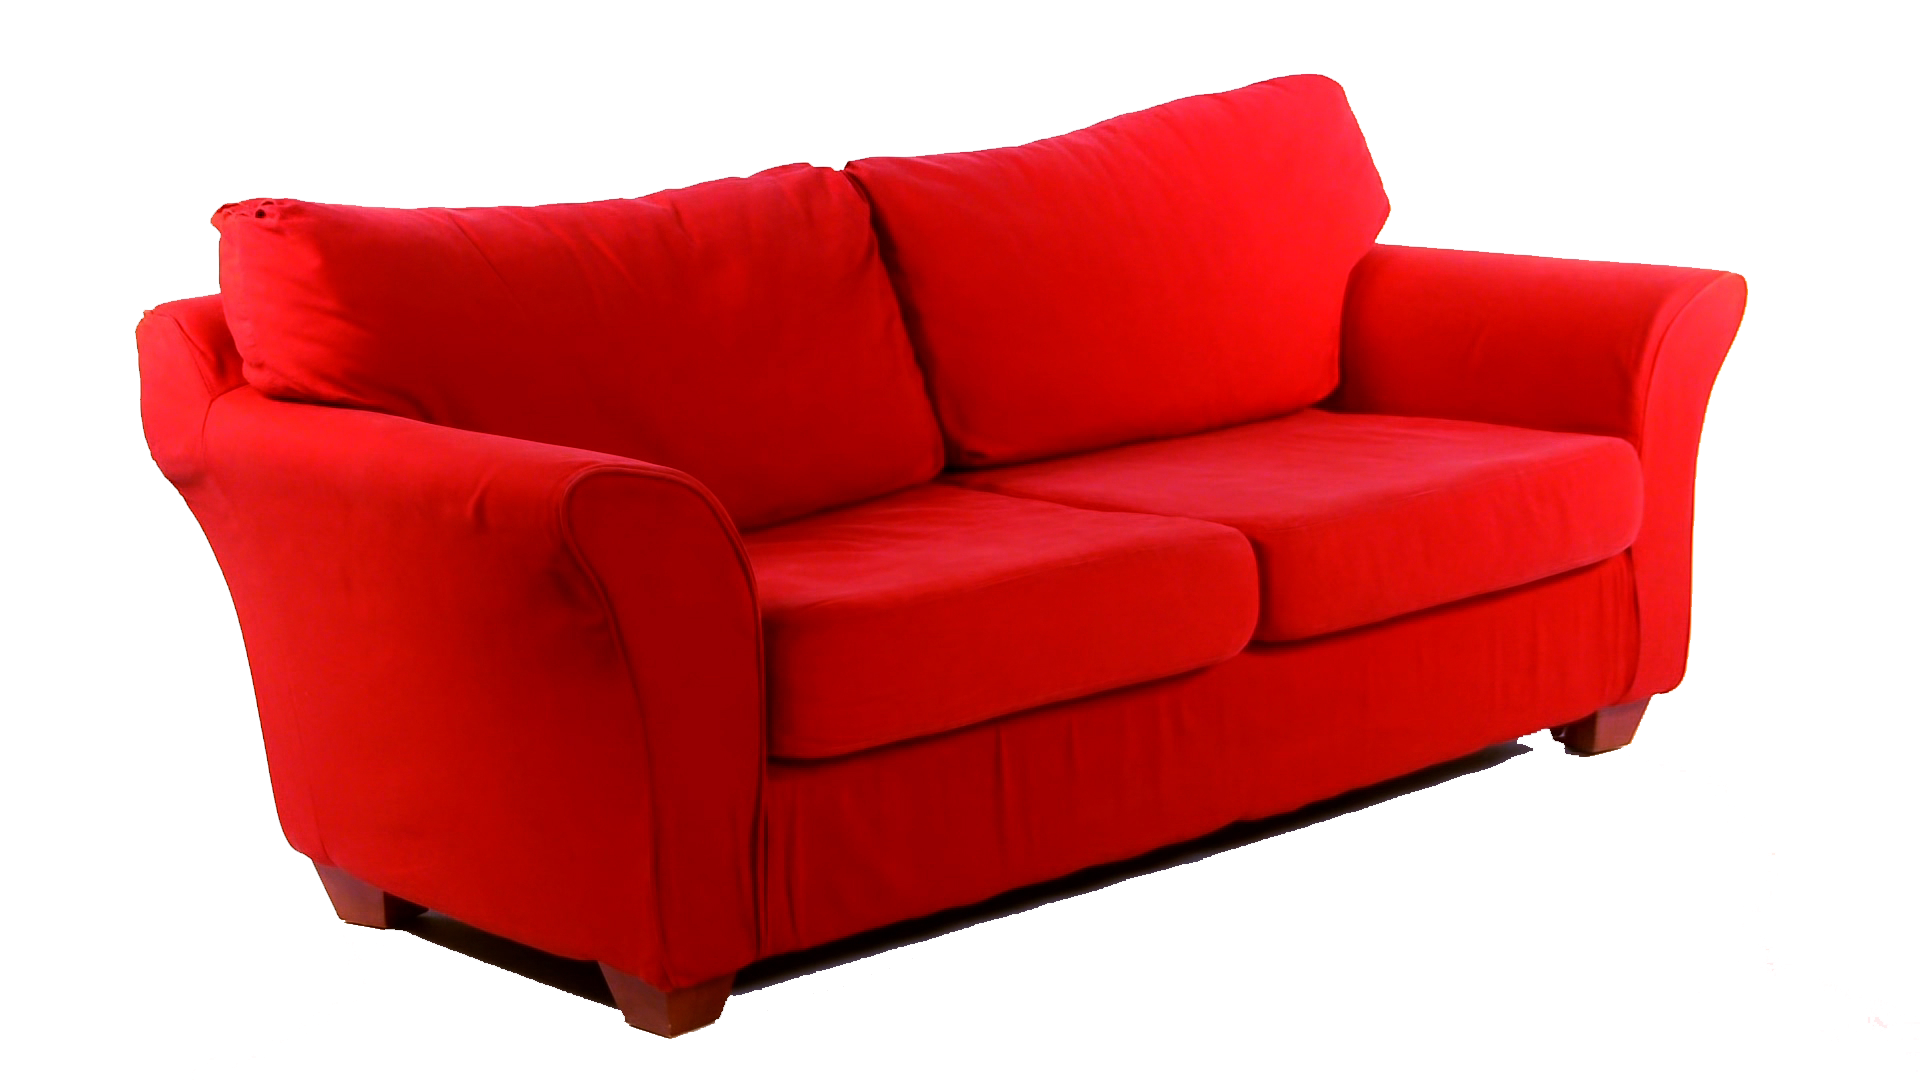 red couch campaign kicking off in birmingham. Black Bedroom Furniture Sets. Home Design Ideas